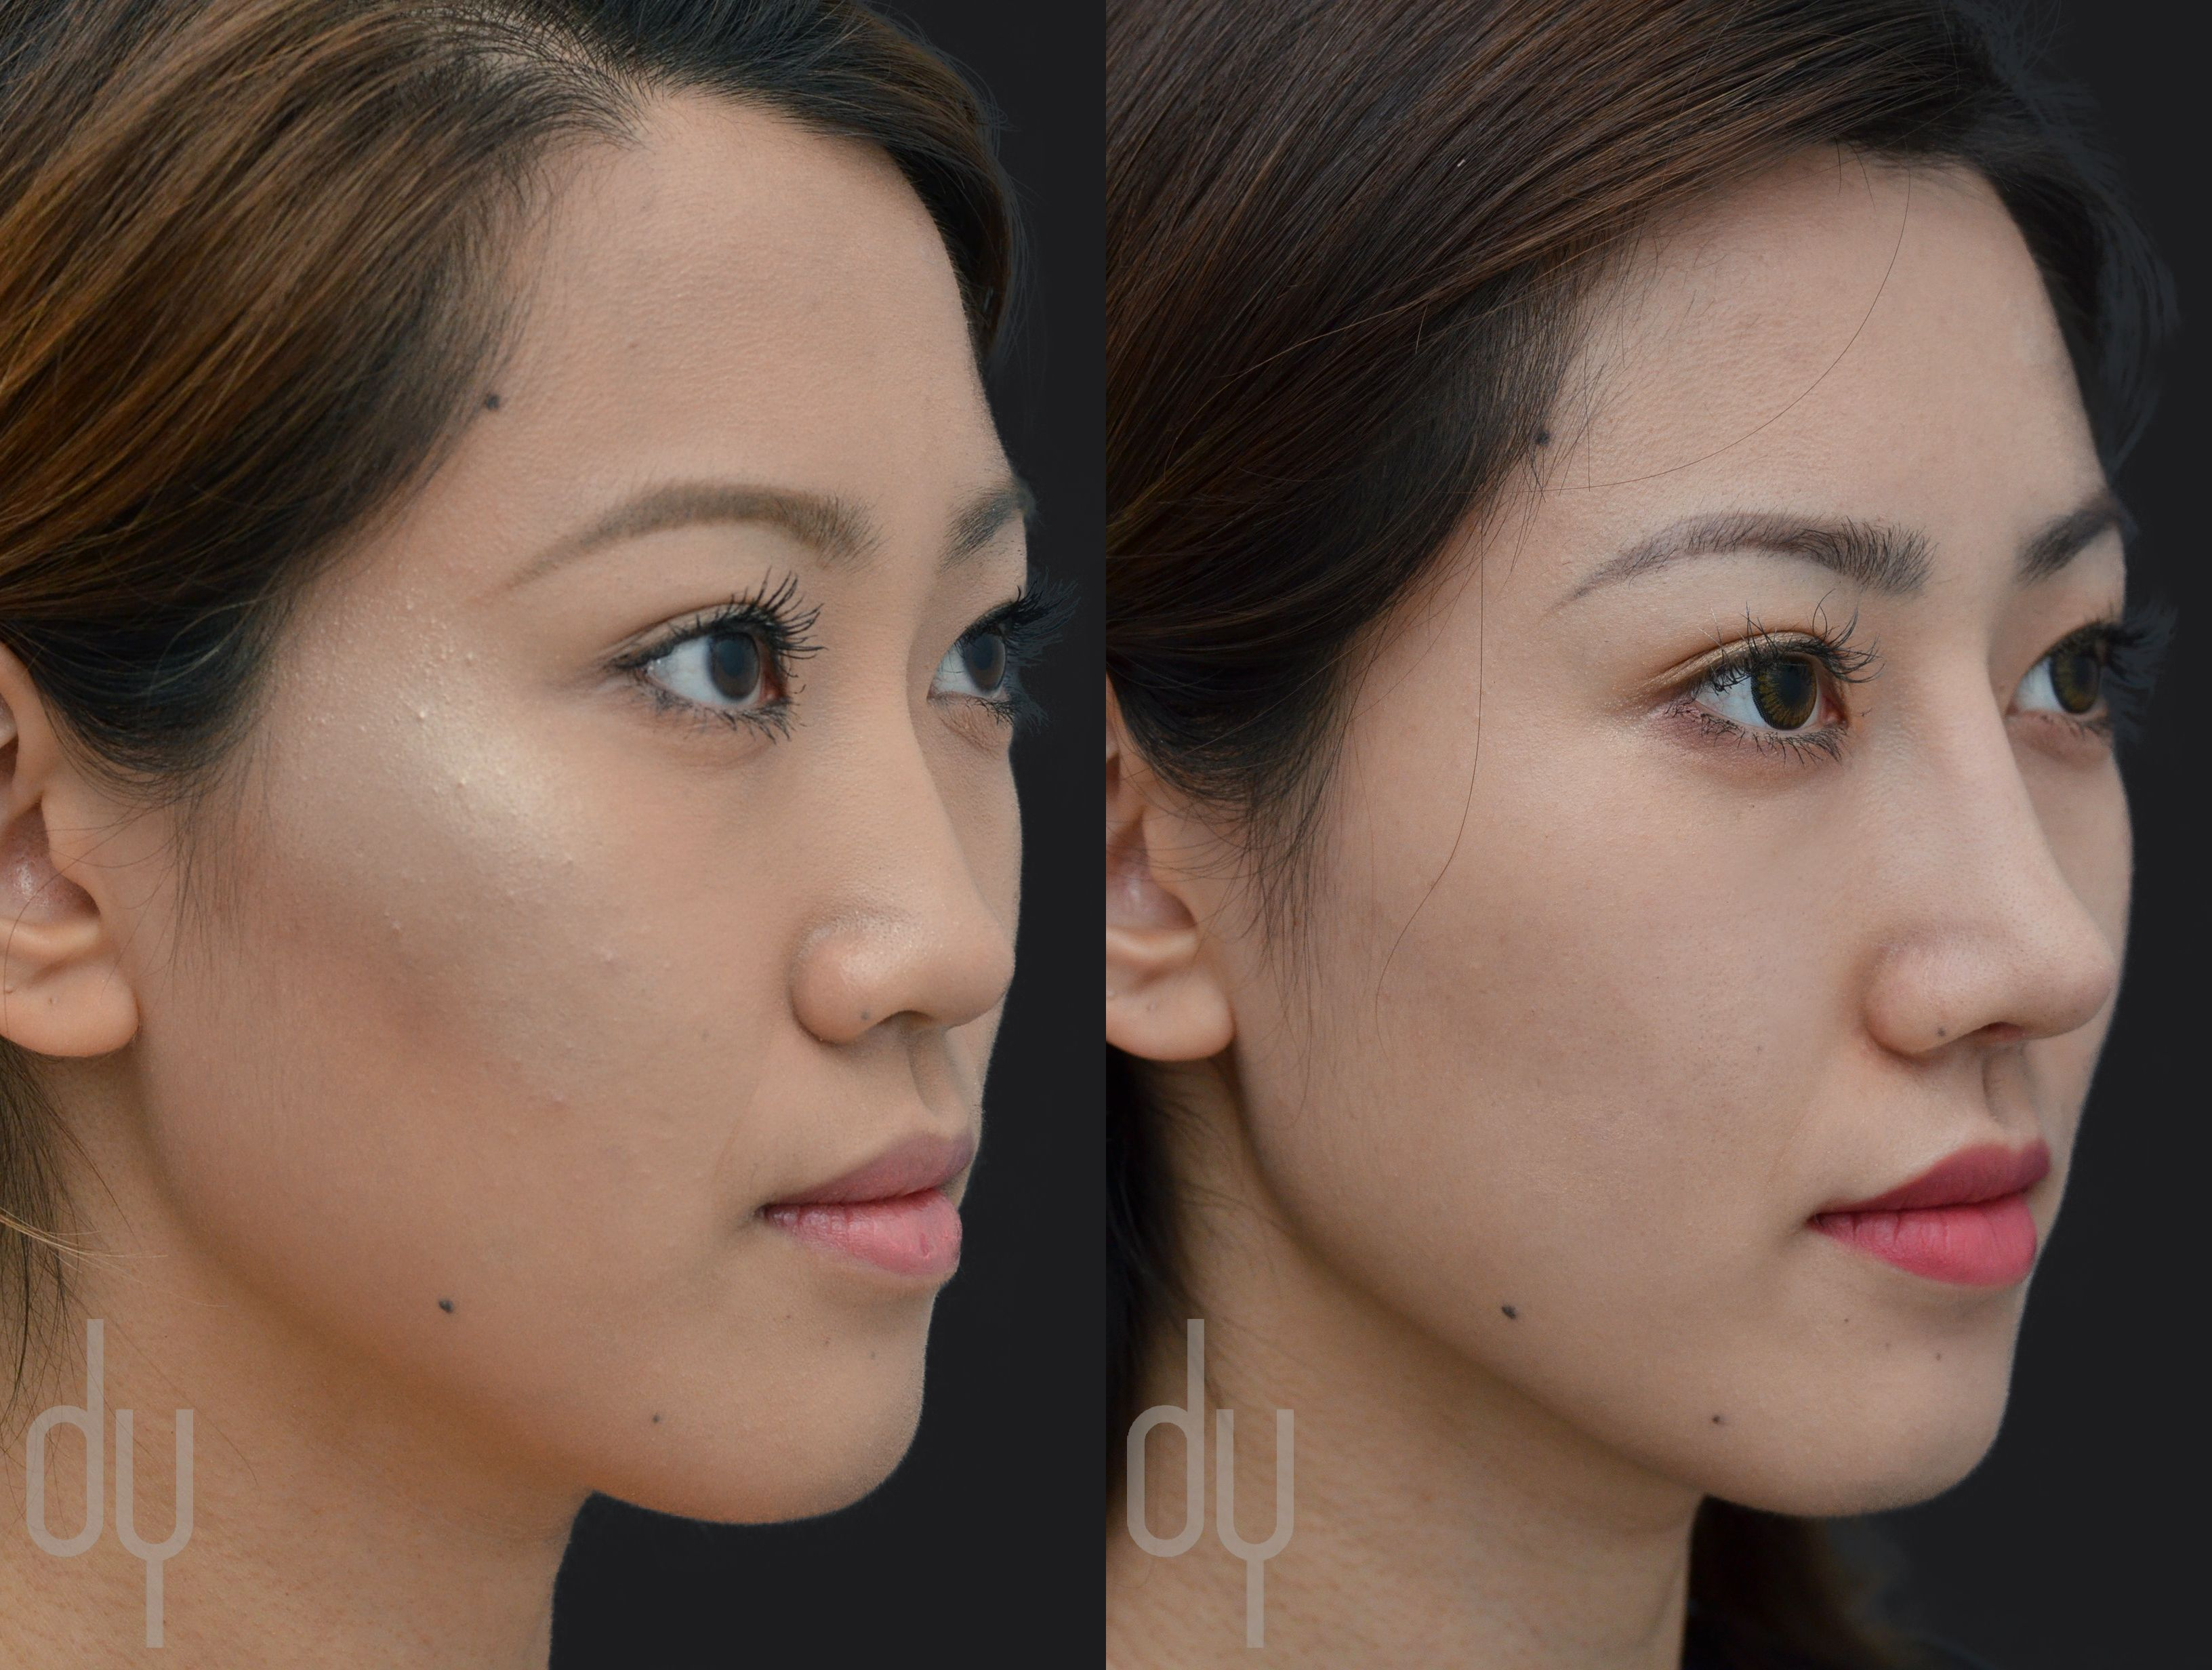 Before and after surgical asian rhinoplasty with rib